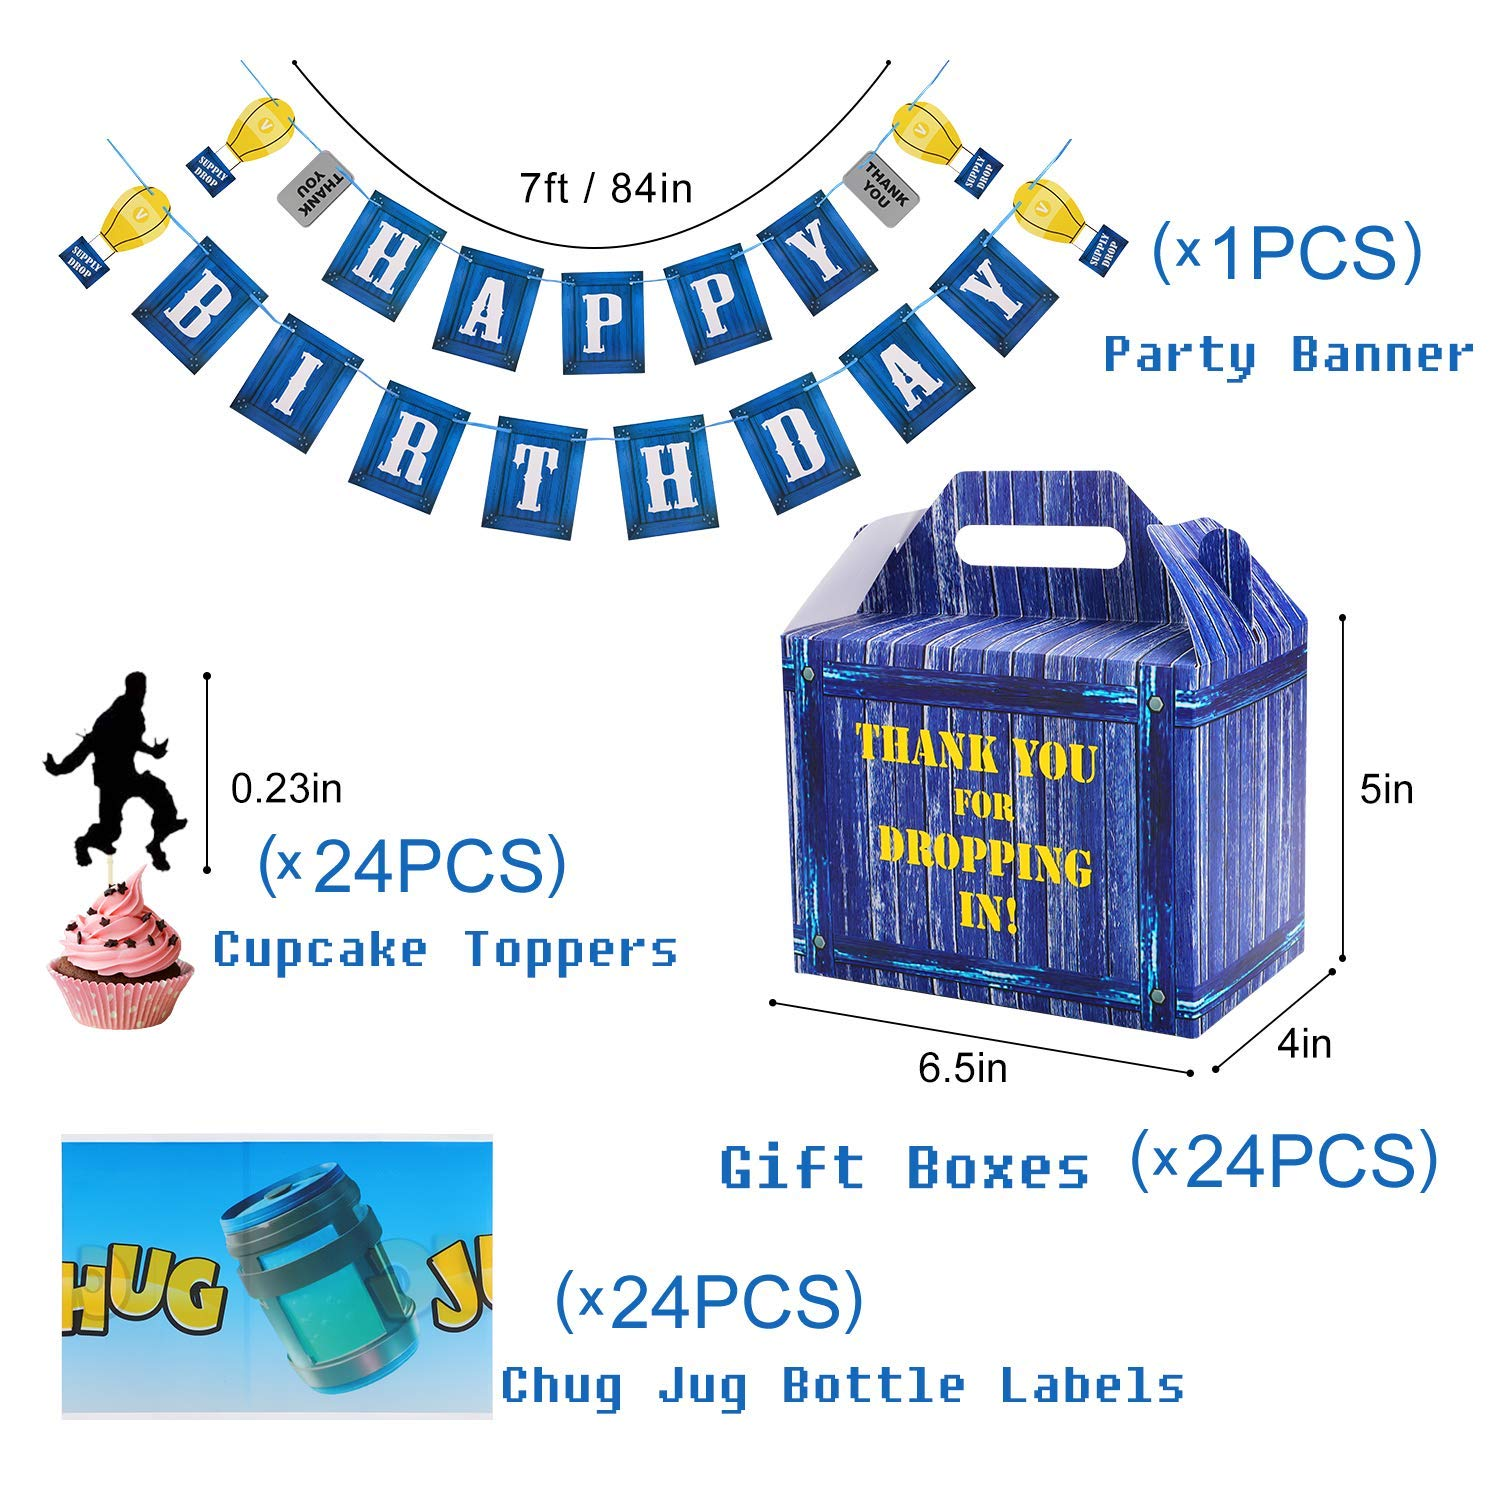 Birthday Party Supplies Set for Game Themed-Including 24 Chug Jug Bottle Labels,24 Game Party Drop Box,24 Cupcake Toppers(24 Styles),1 Birthday Party Banner by Esjay (Image #1)